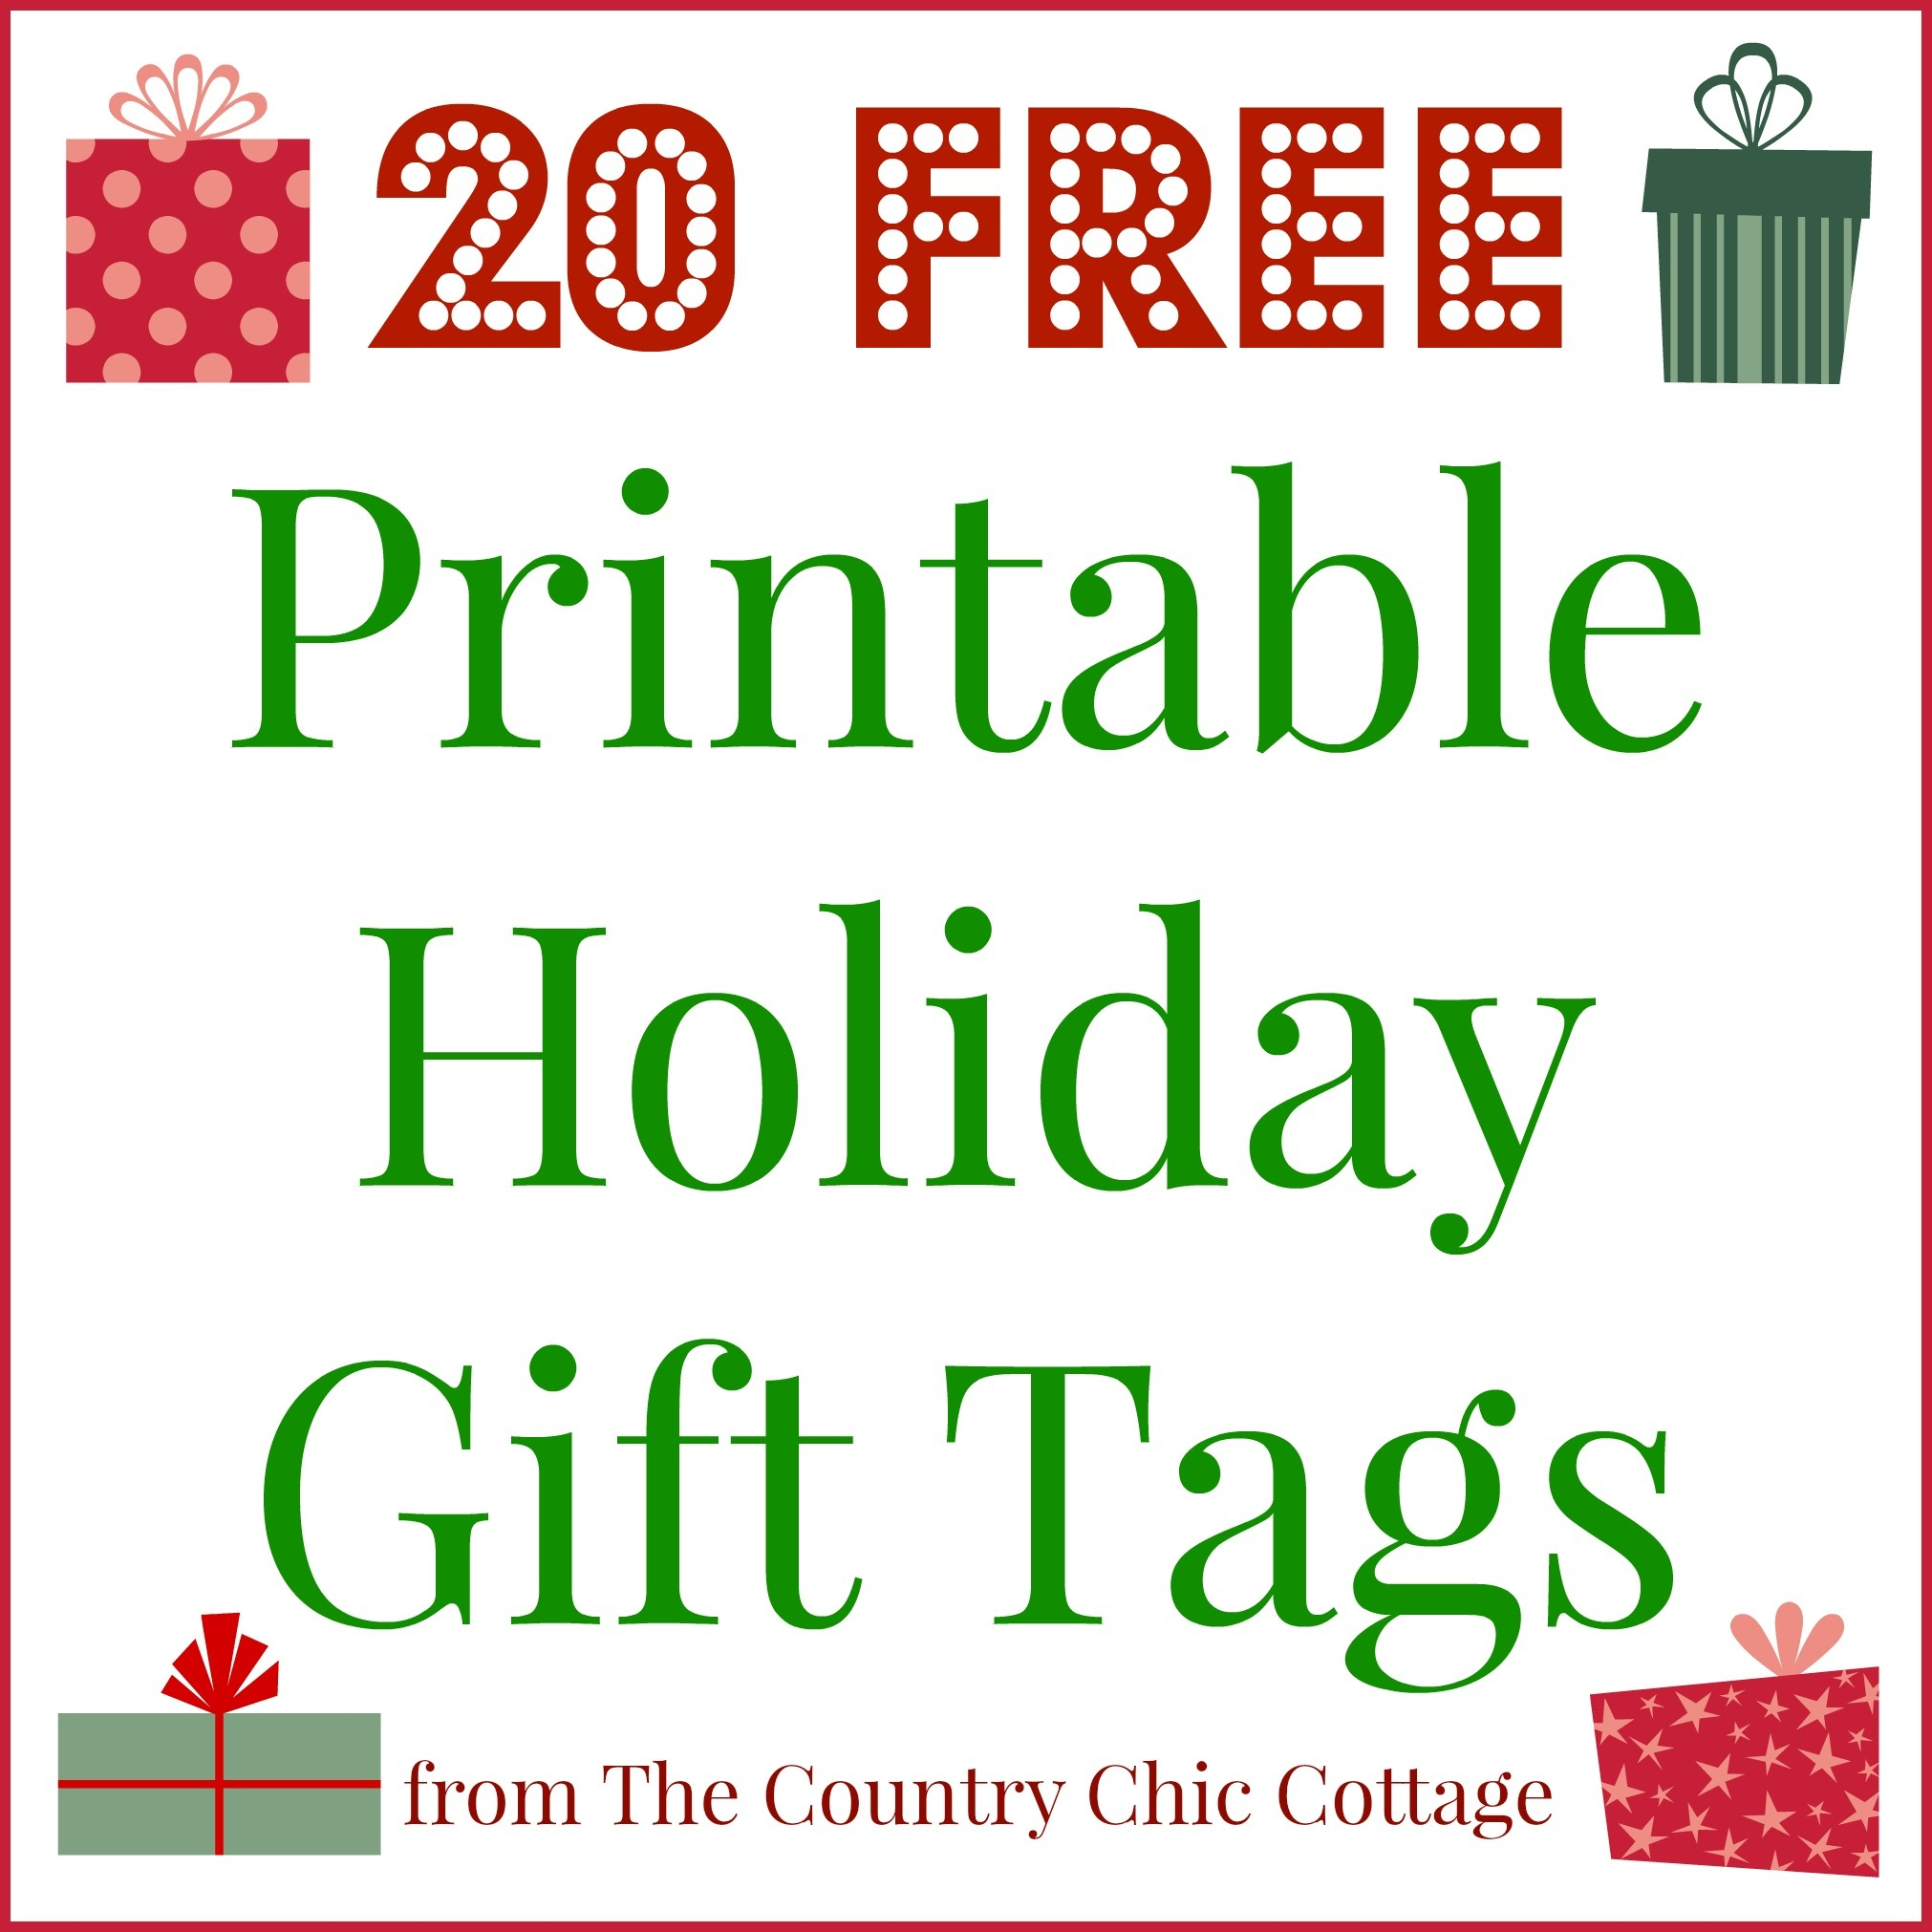 20 Printable Holiday Gift Tags (For Free!!) - The Country Chic Cottage - Christmas Name Tags Free Printable